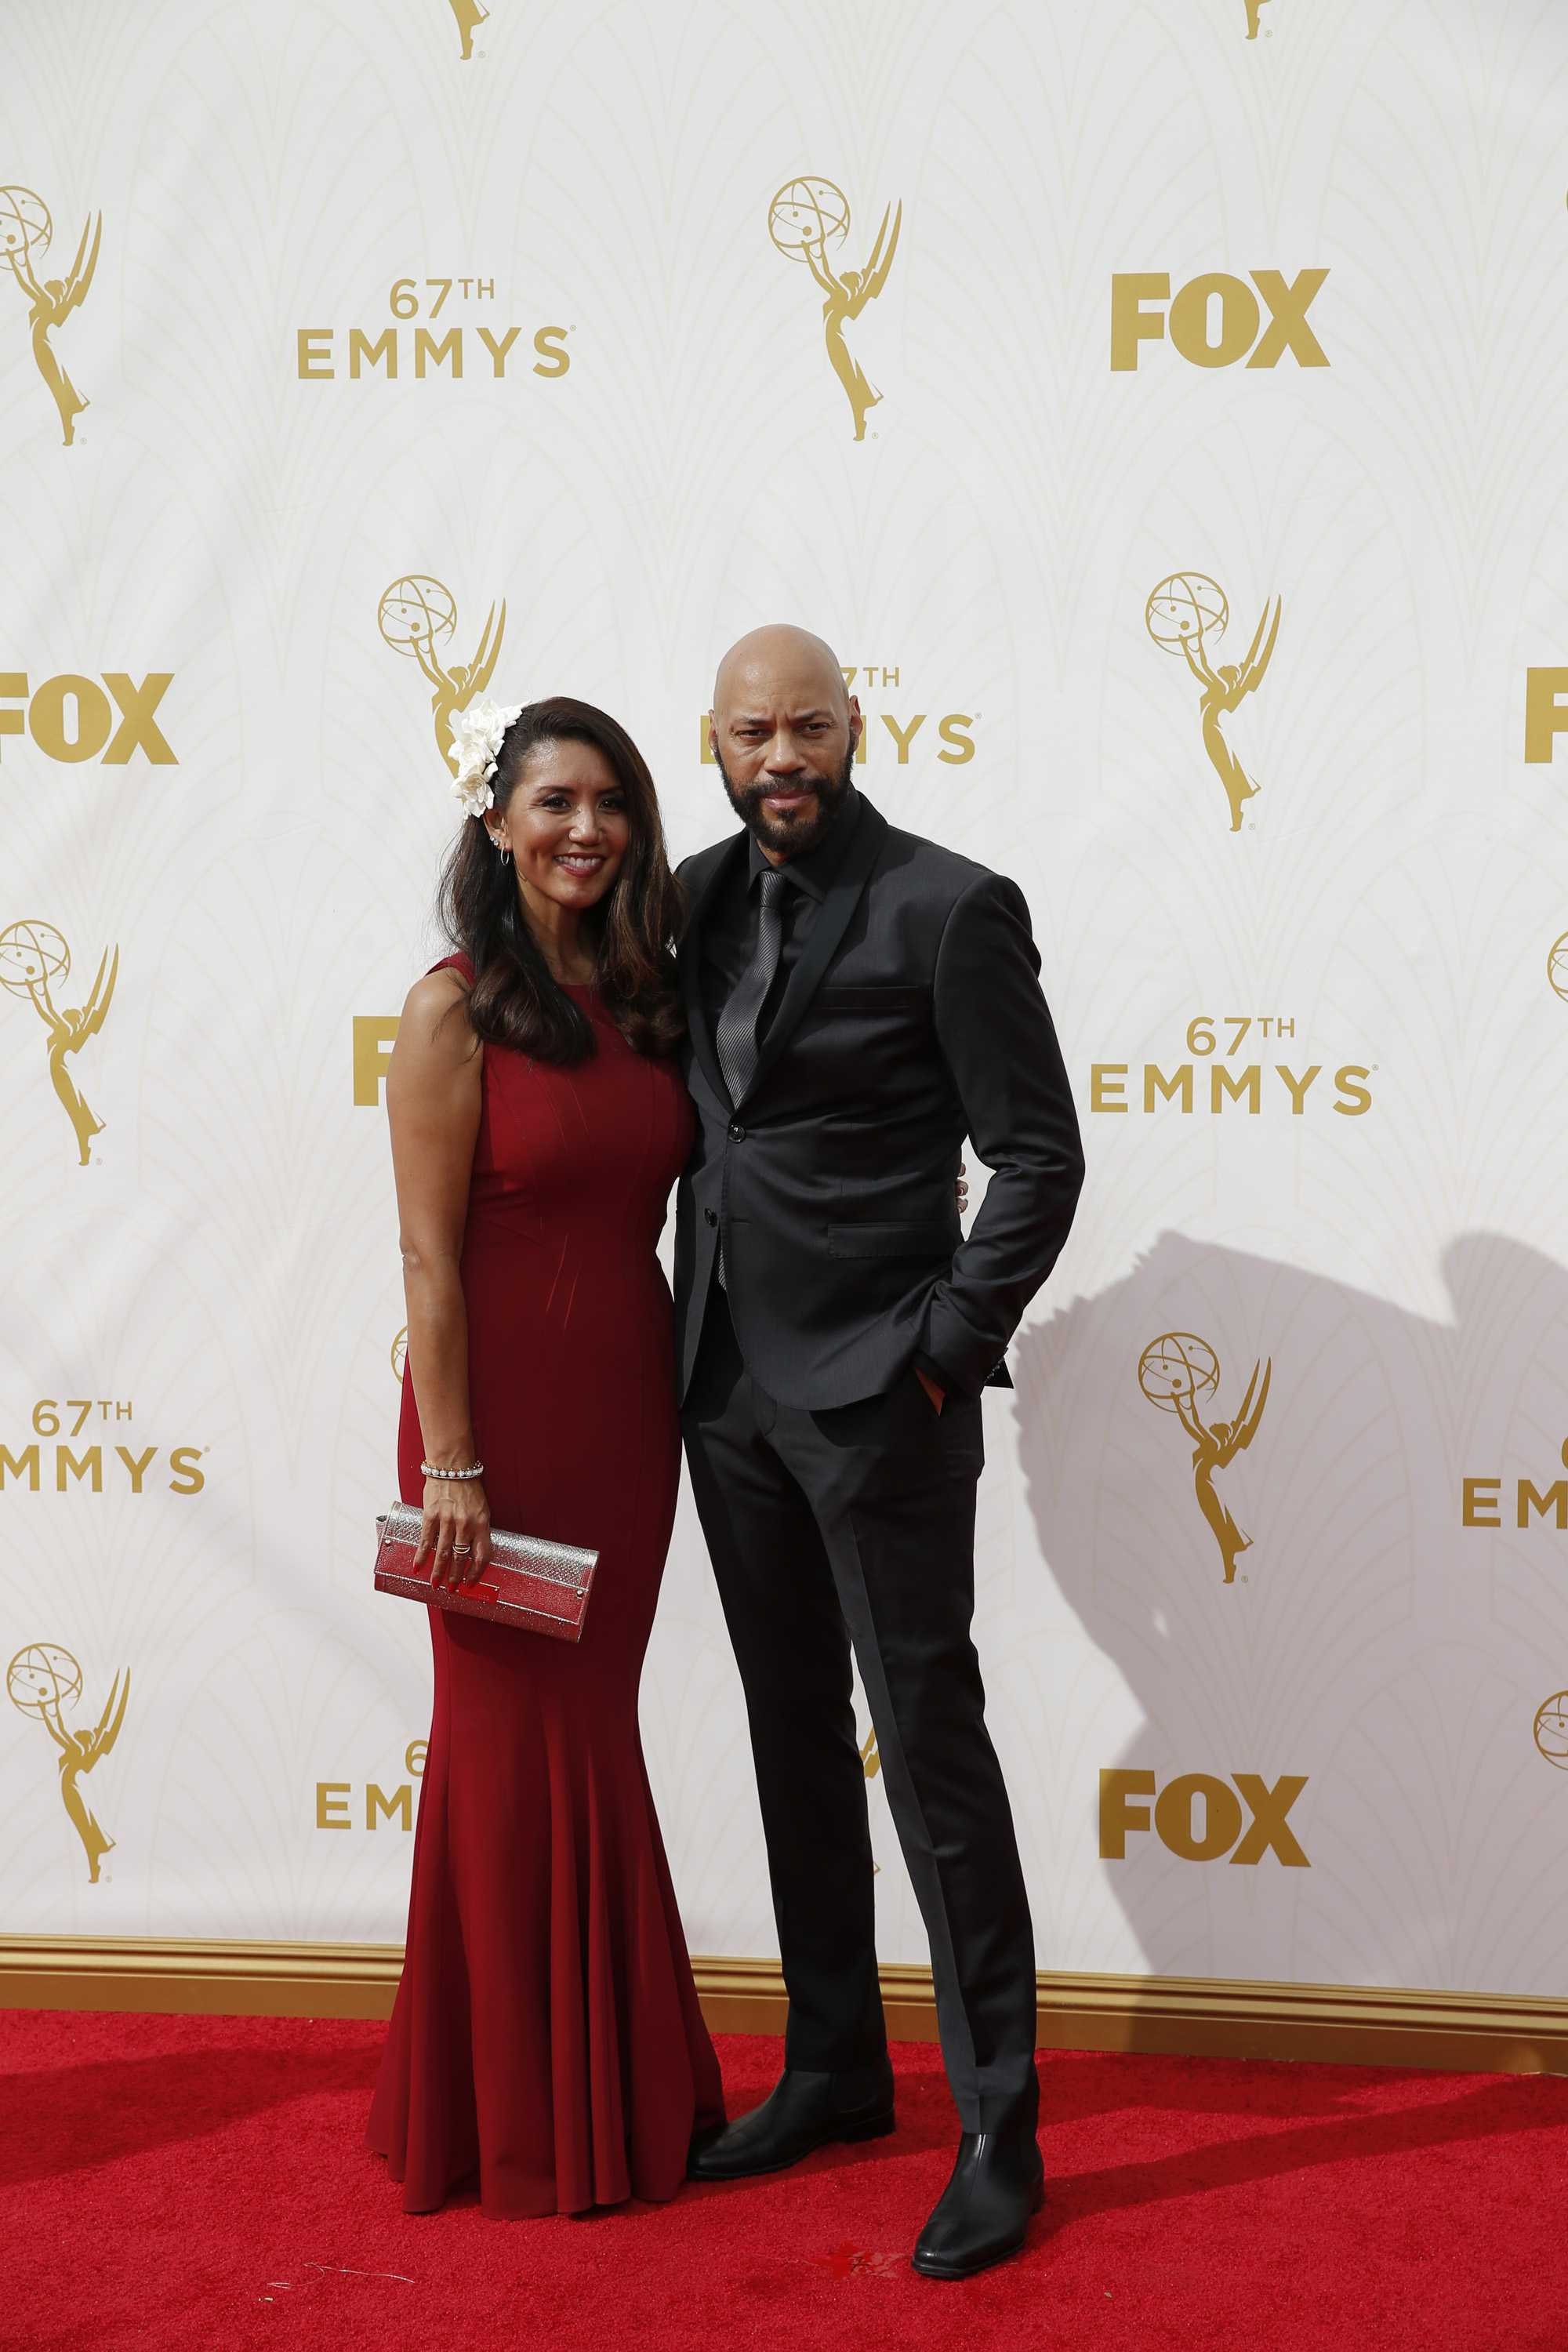 Gayle and John Ridley arrive for the 67th Annual Primetime Emmy Awards at the Microsoft Theater in Los Angeles on Sunday, Sept. 20, 2015. (Jay L. Clendenin/Los Angeles Times/TNS)